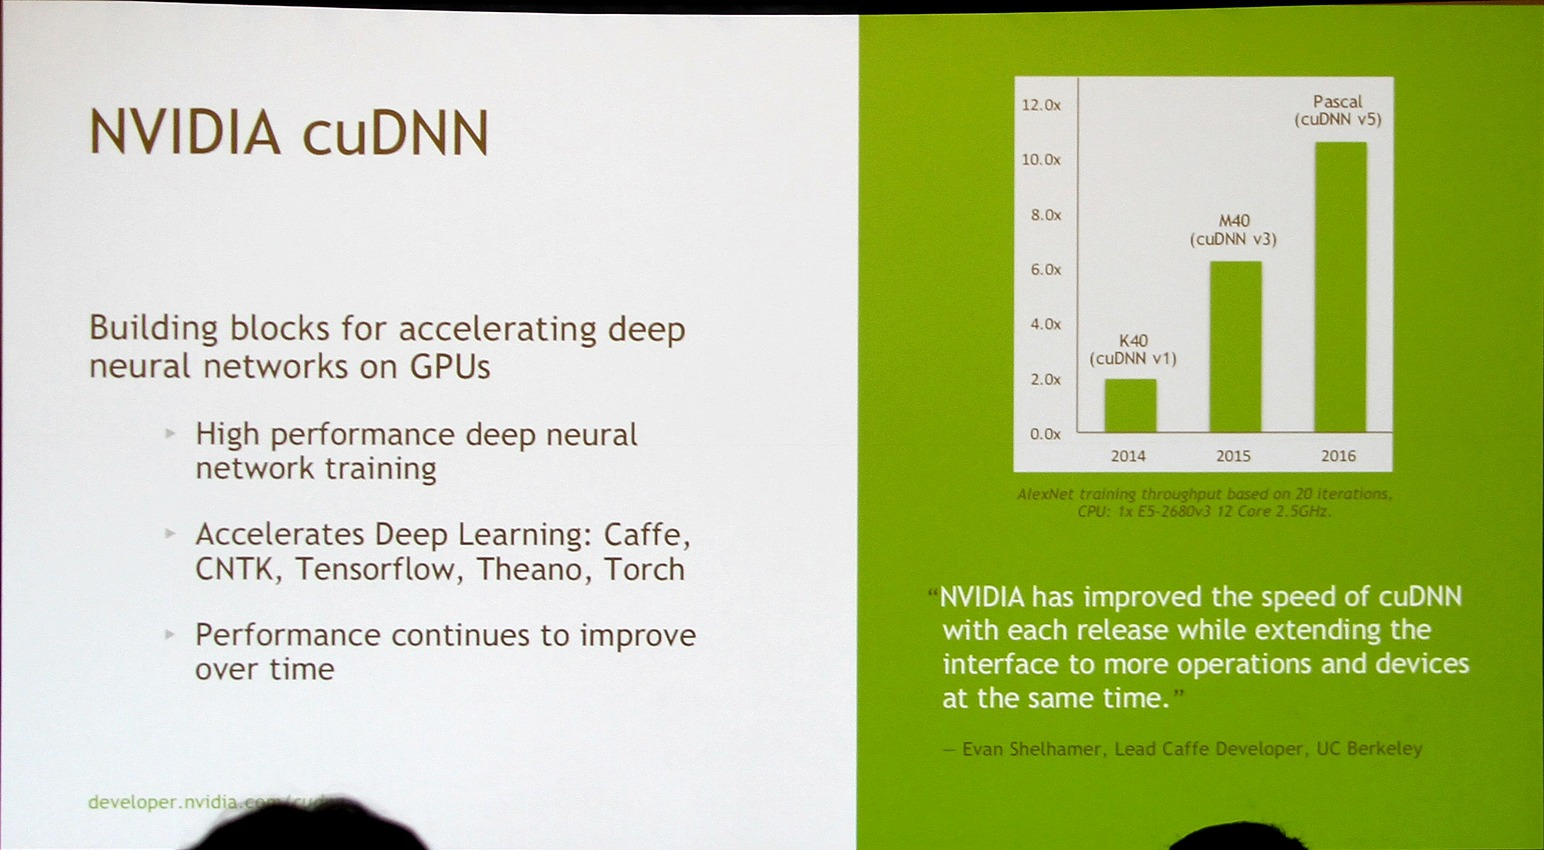 NVIDIA's 5th Gen Flagship Pascal GPU is 70% Faster Than